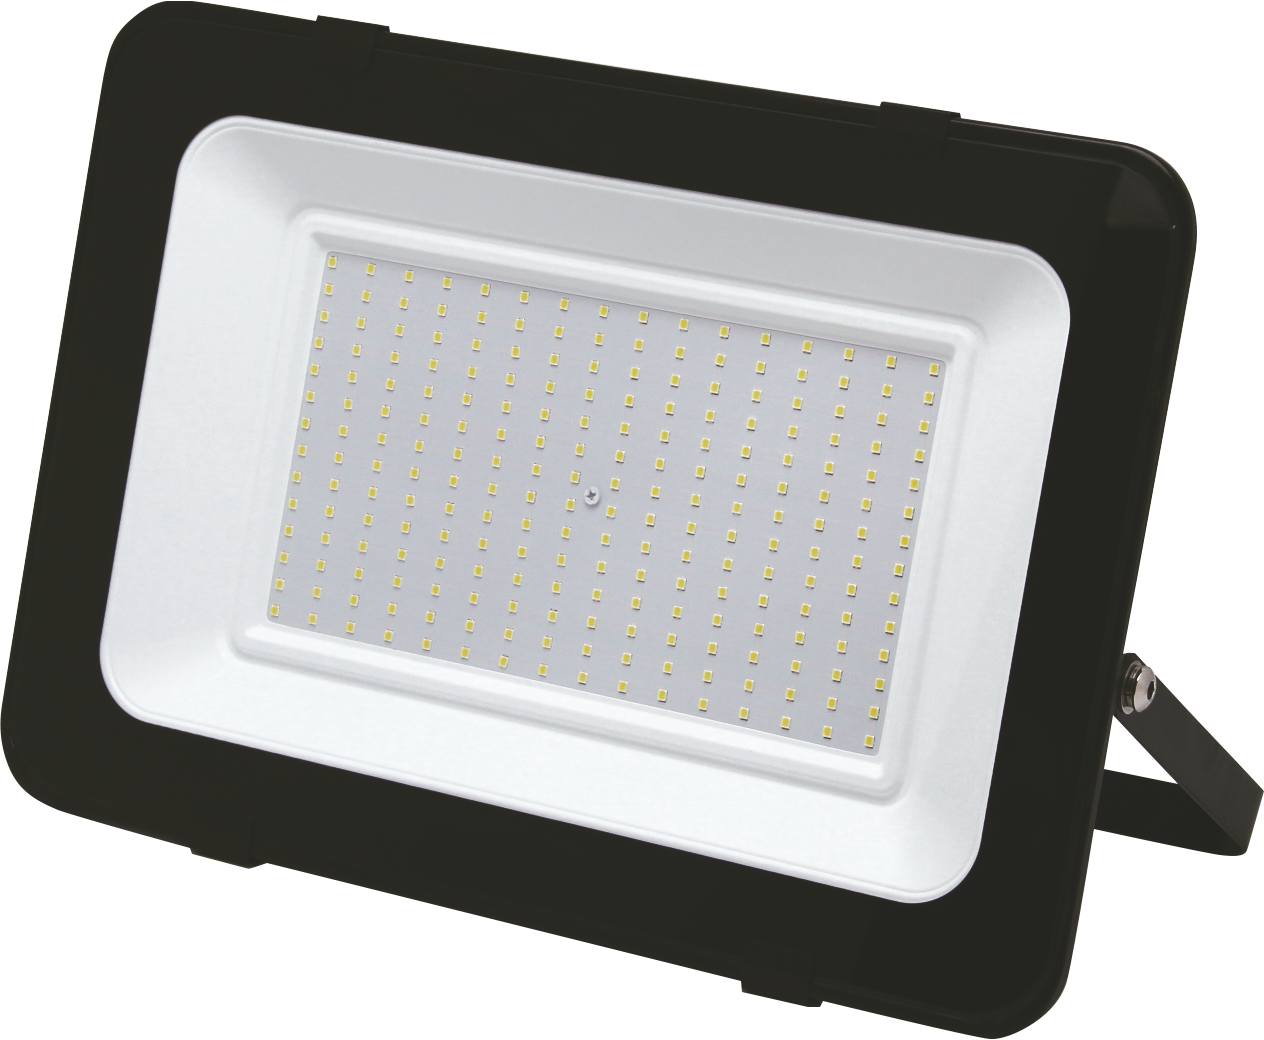 10w 20w 30w 50w 100w Super brightness IP65 outdoor die-casting housing reflector led flood light plastic cover protection